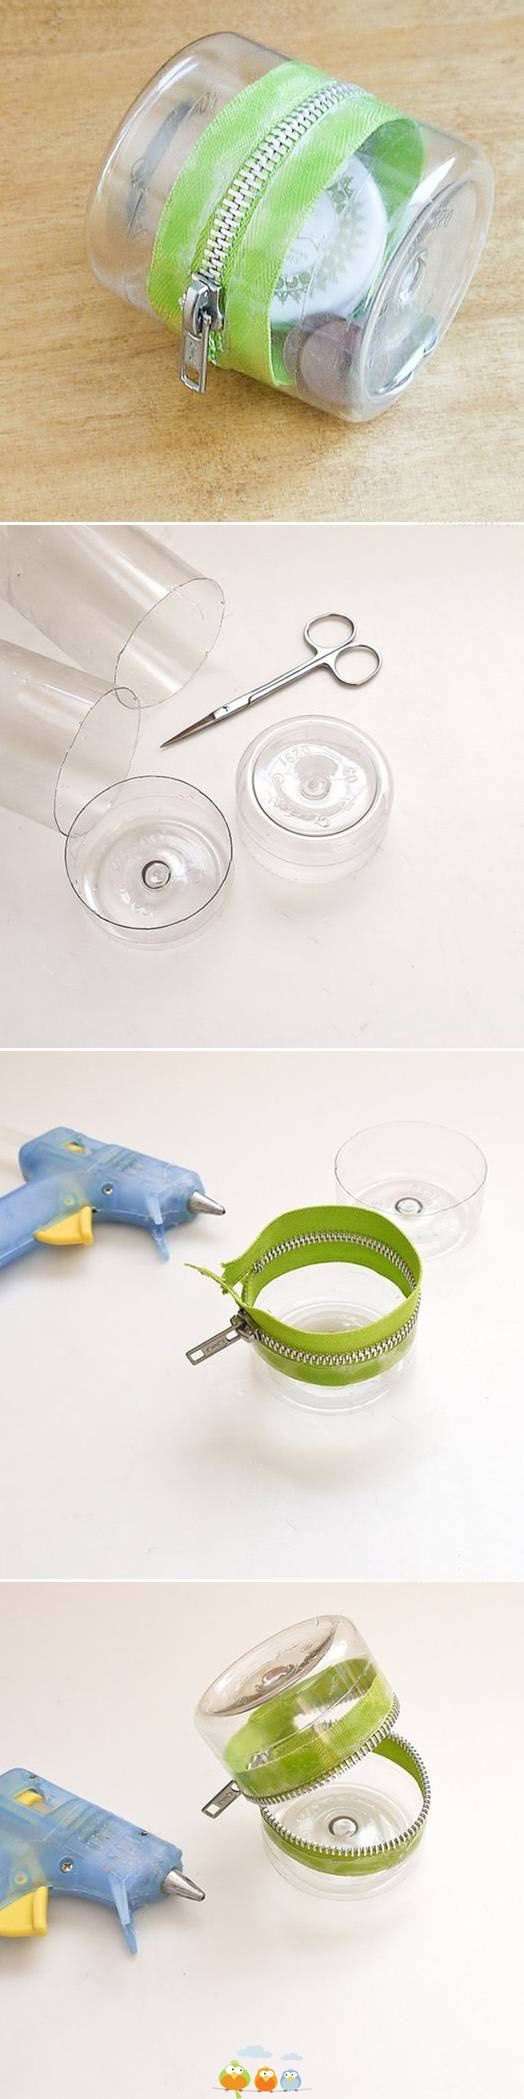 zippered recycled bottles makes a cool storage container